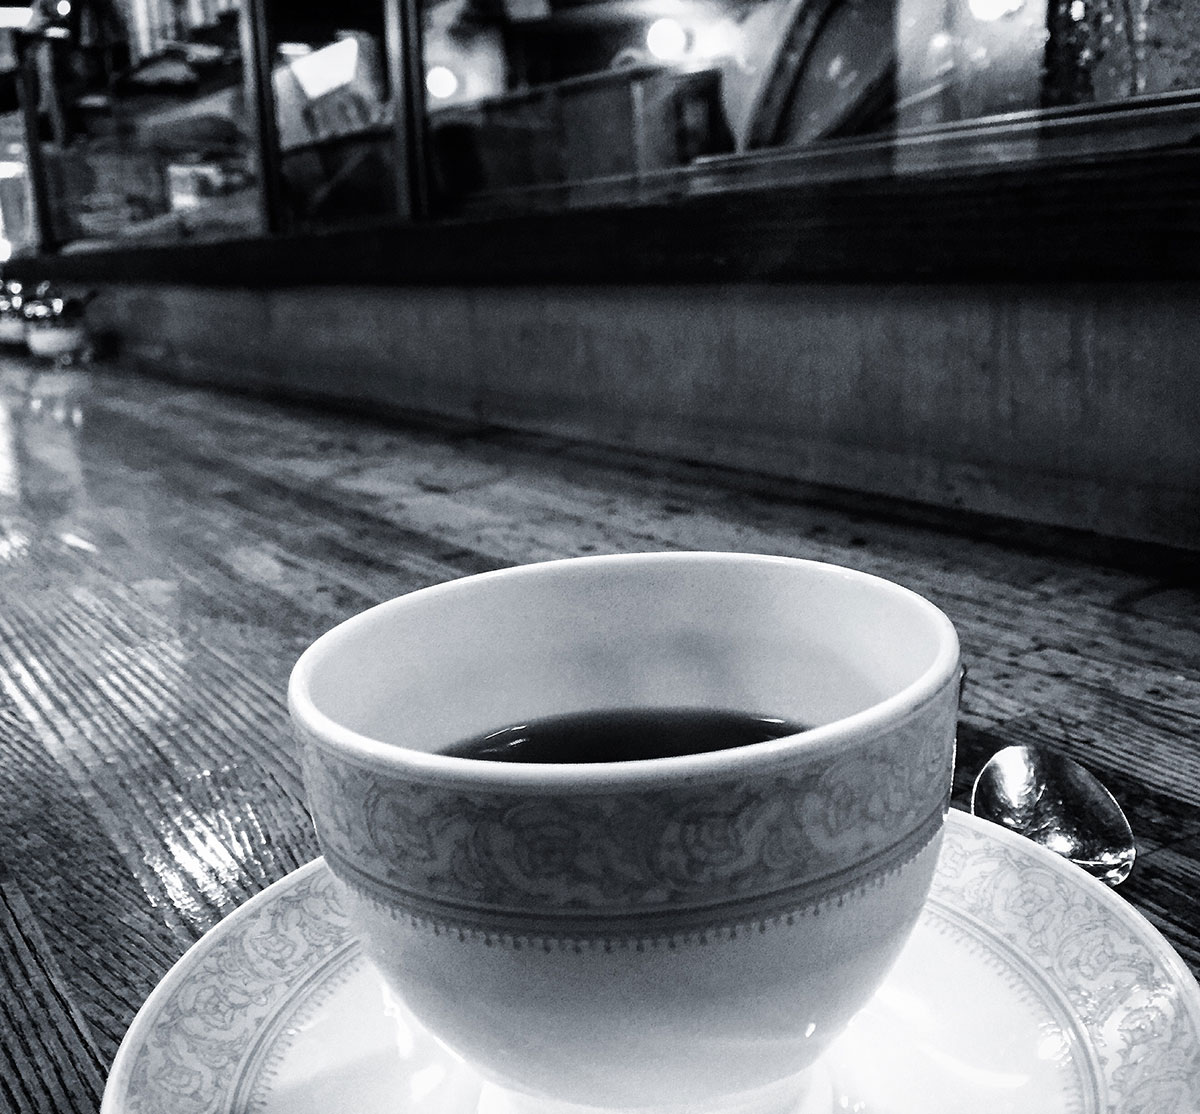 EC:  assets%2Fmessage-editor%2F1463506339243-tokyo-coffee-kanda-inline